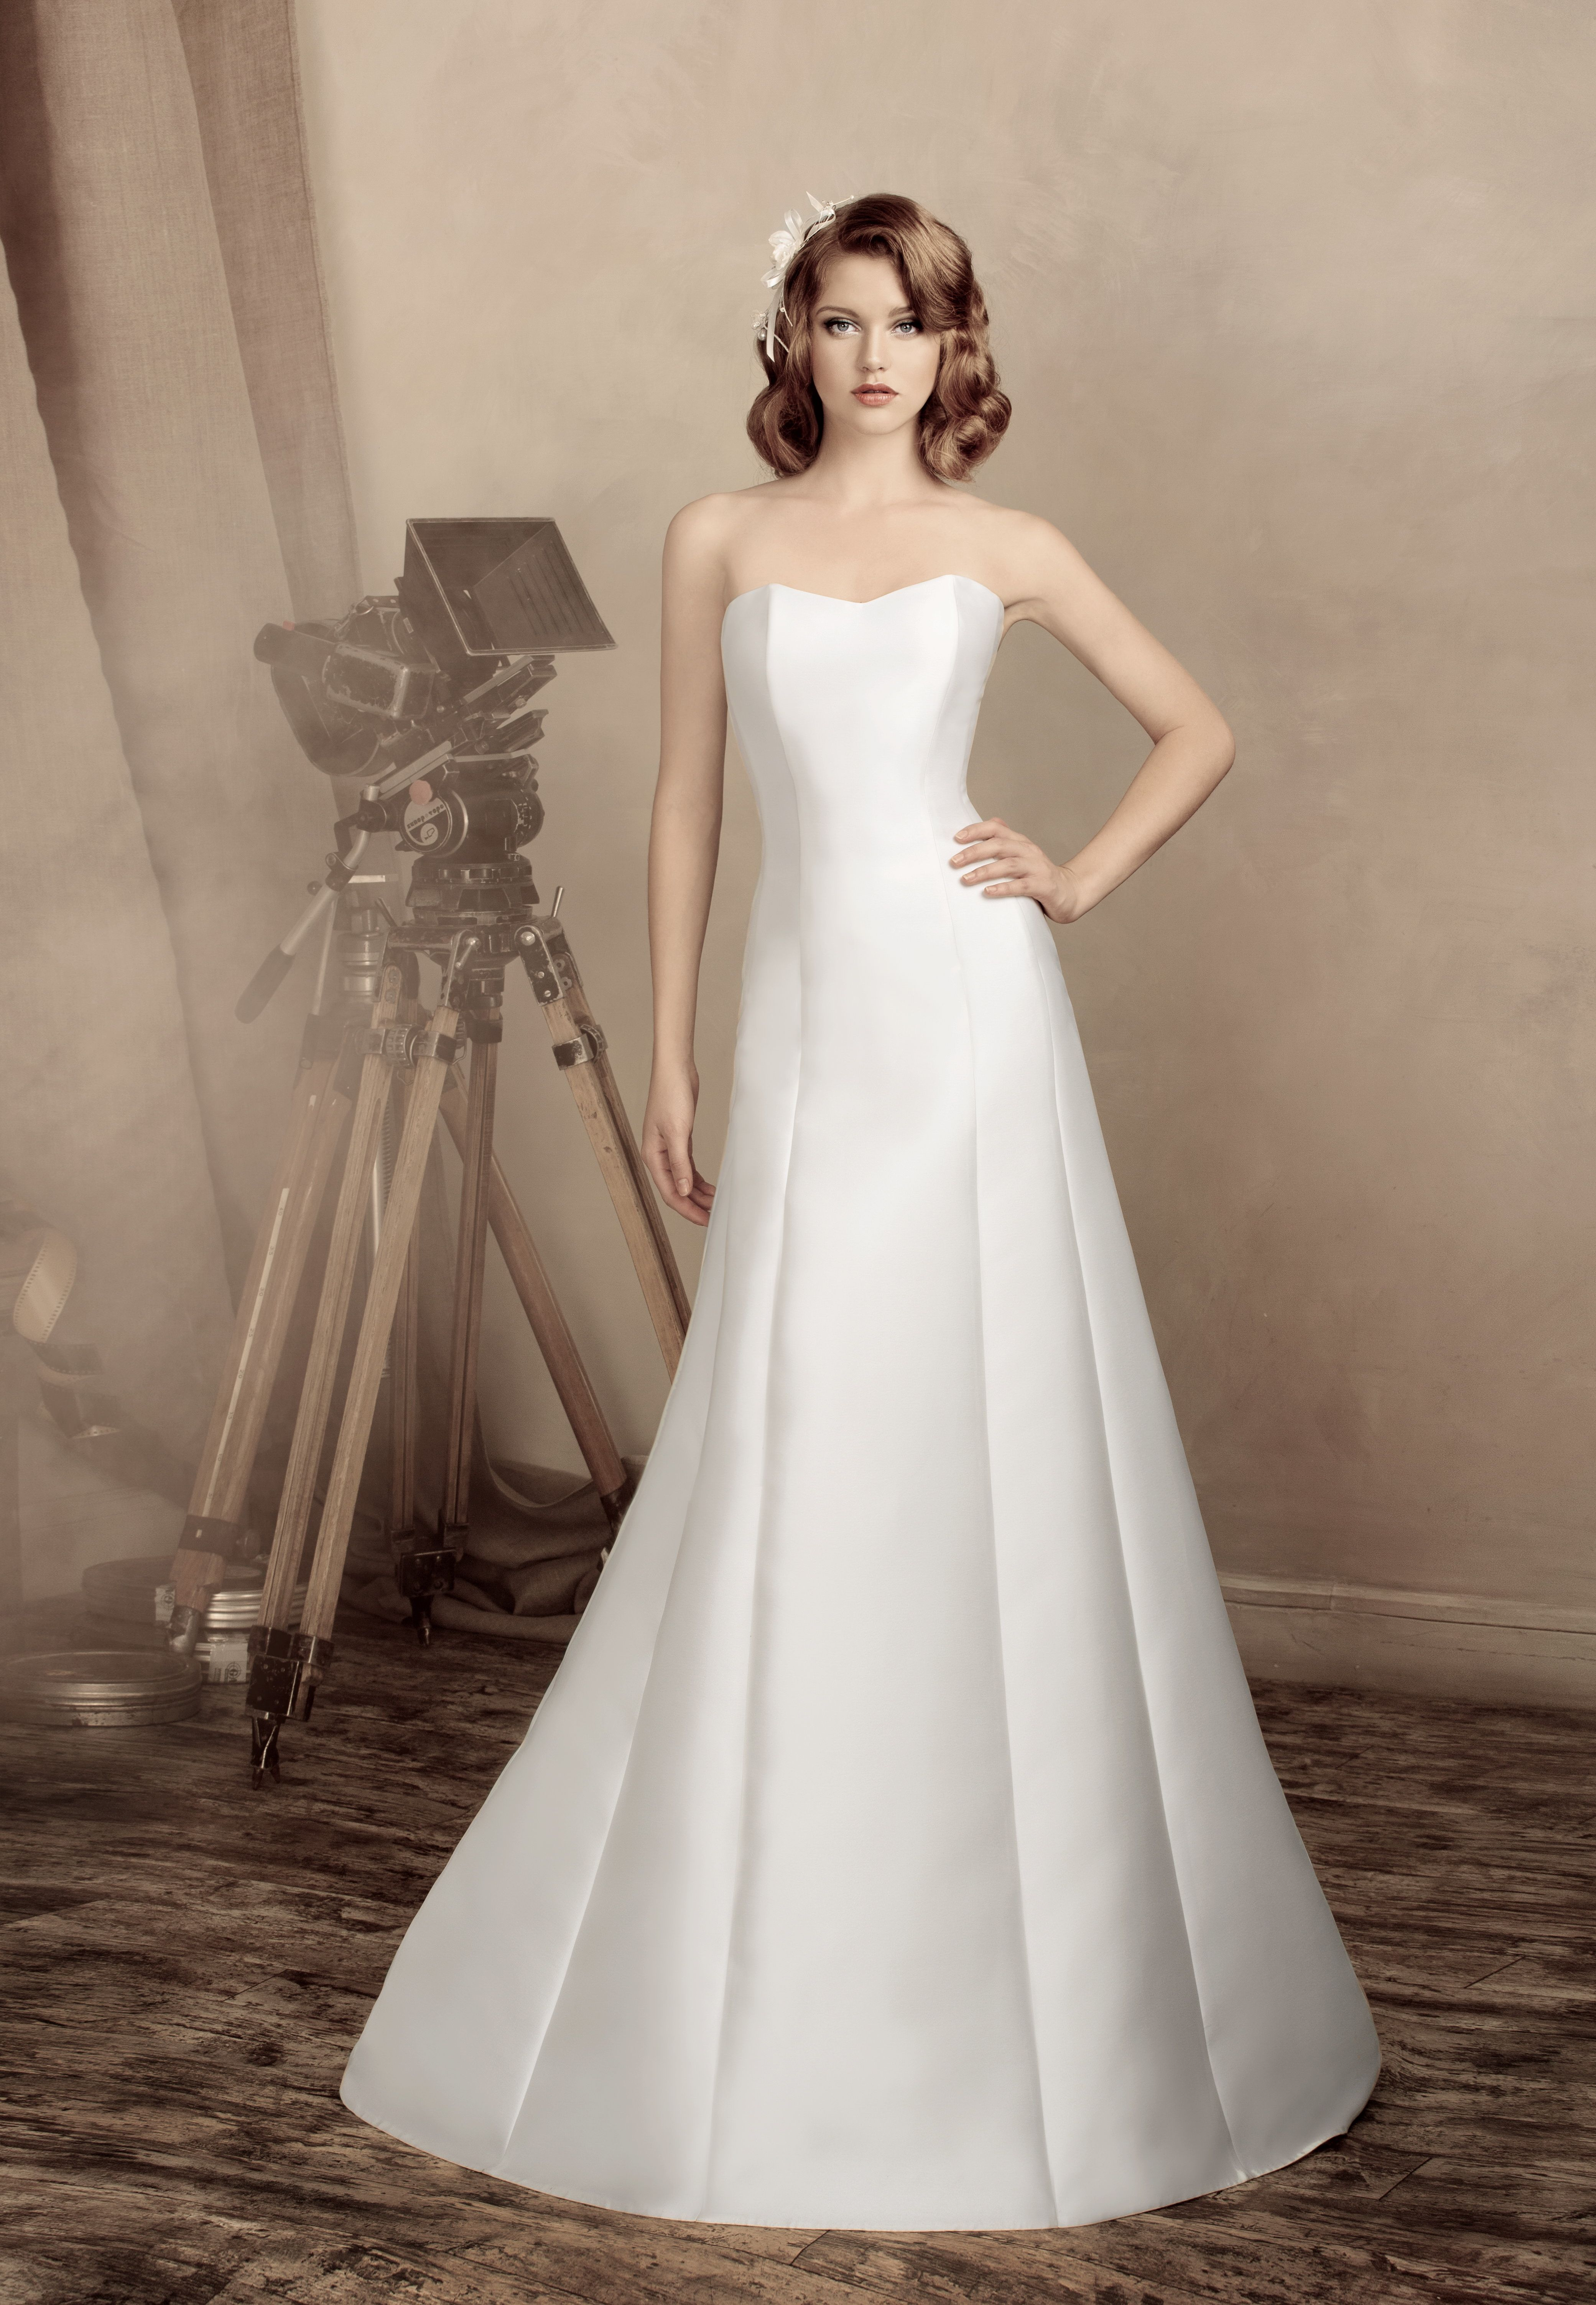 Simple wedding dress, A-line silhouette, made of silk mikado, from ...